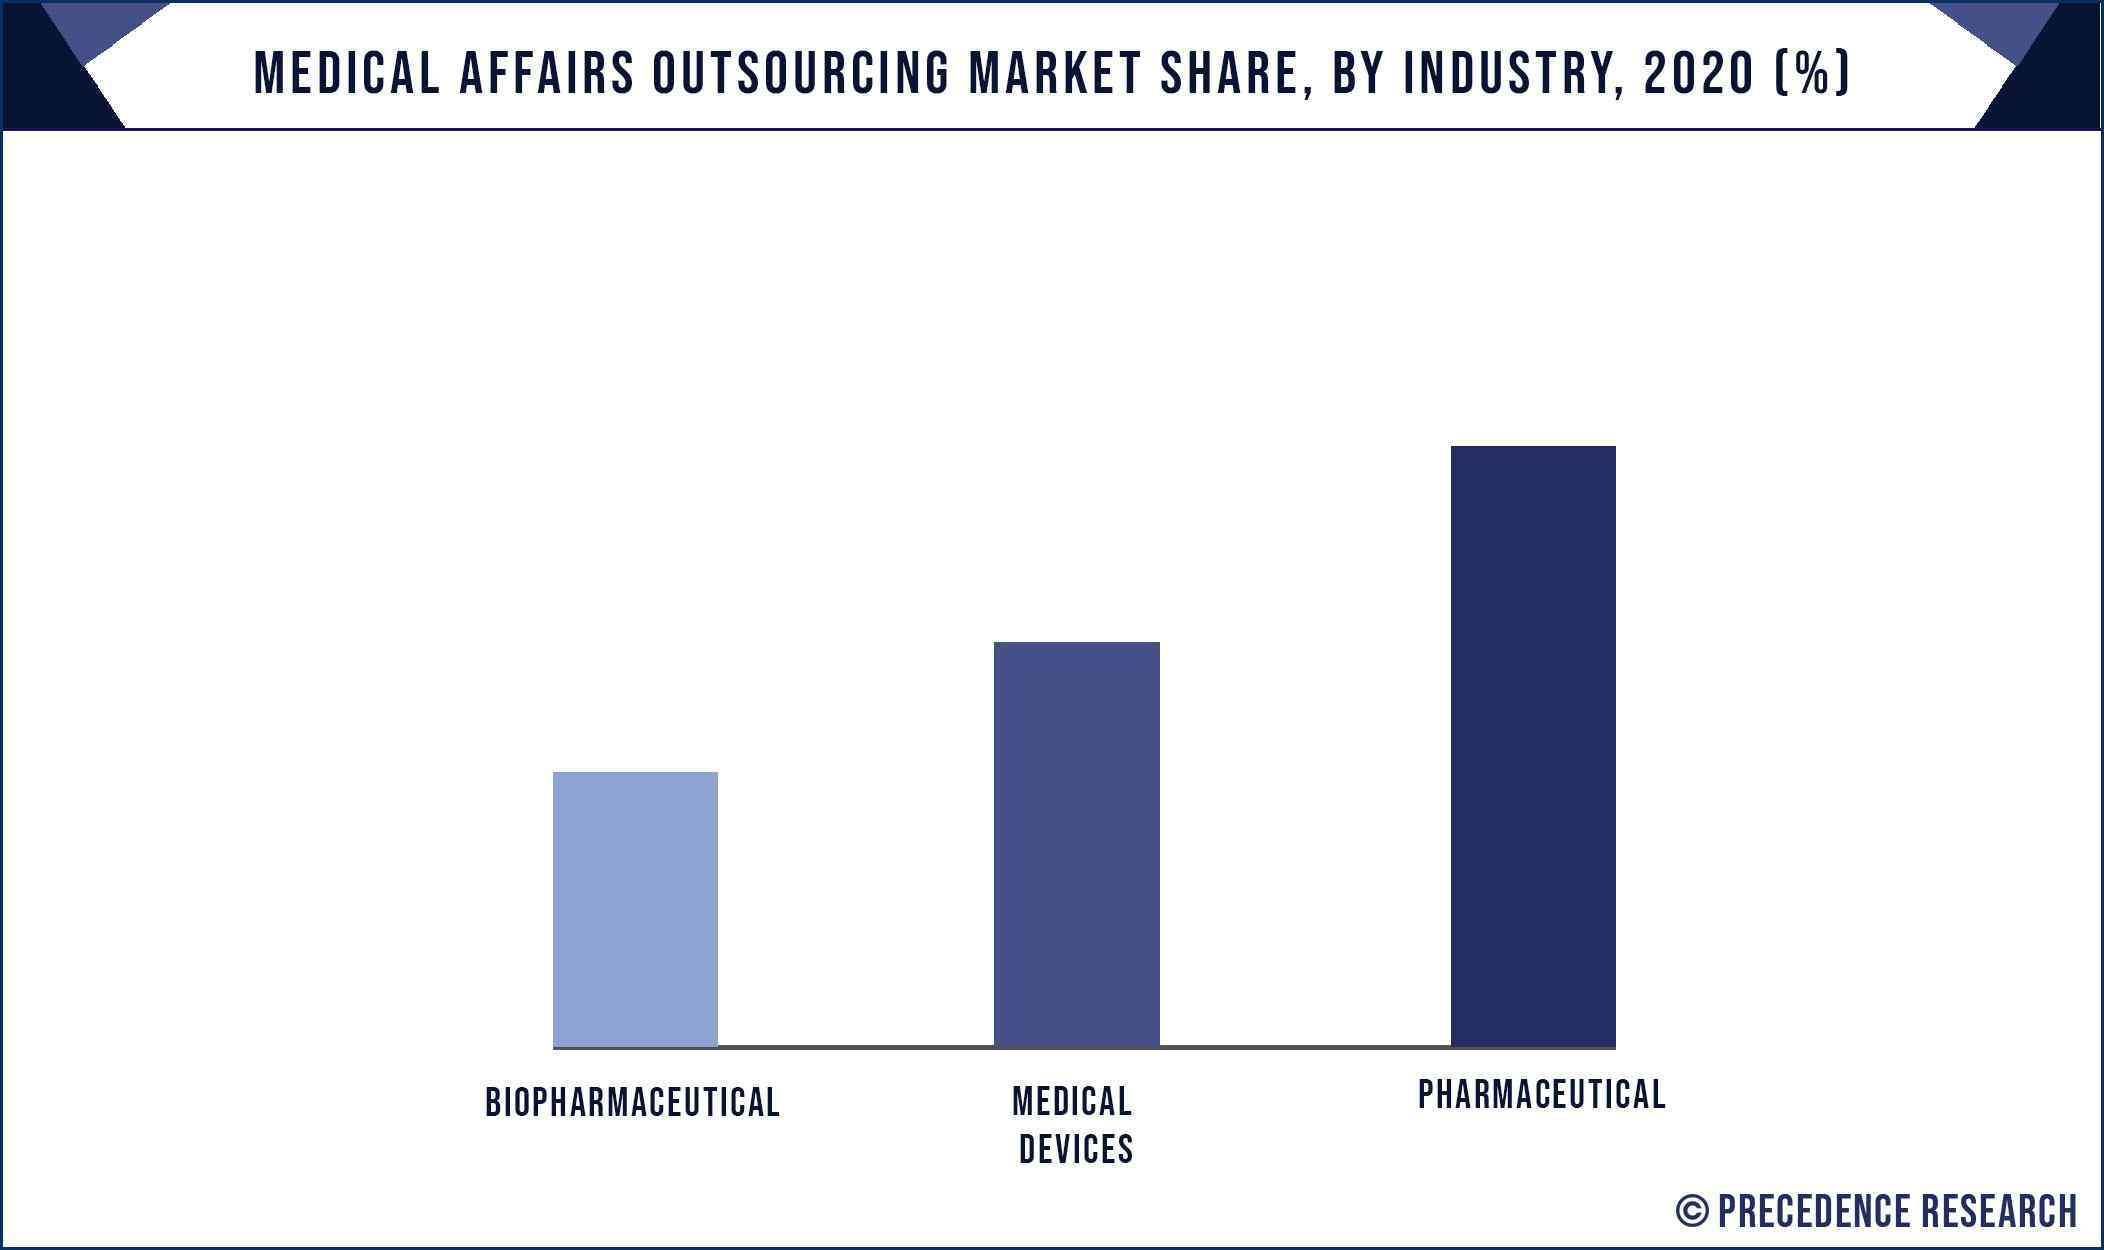 Medical Affairs Outsourcing Market Share, By Industry, 2020 (%)